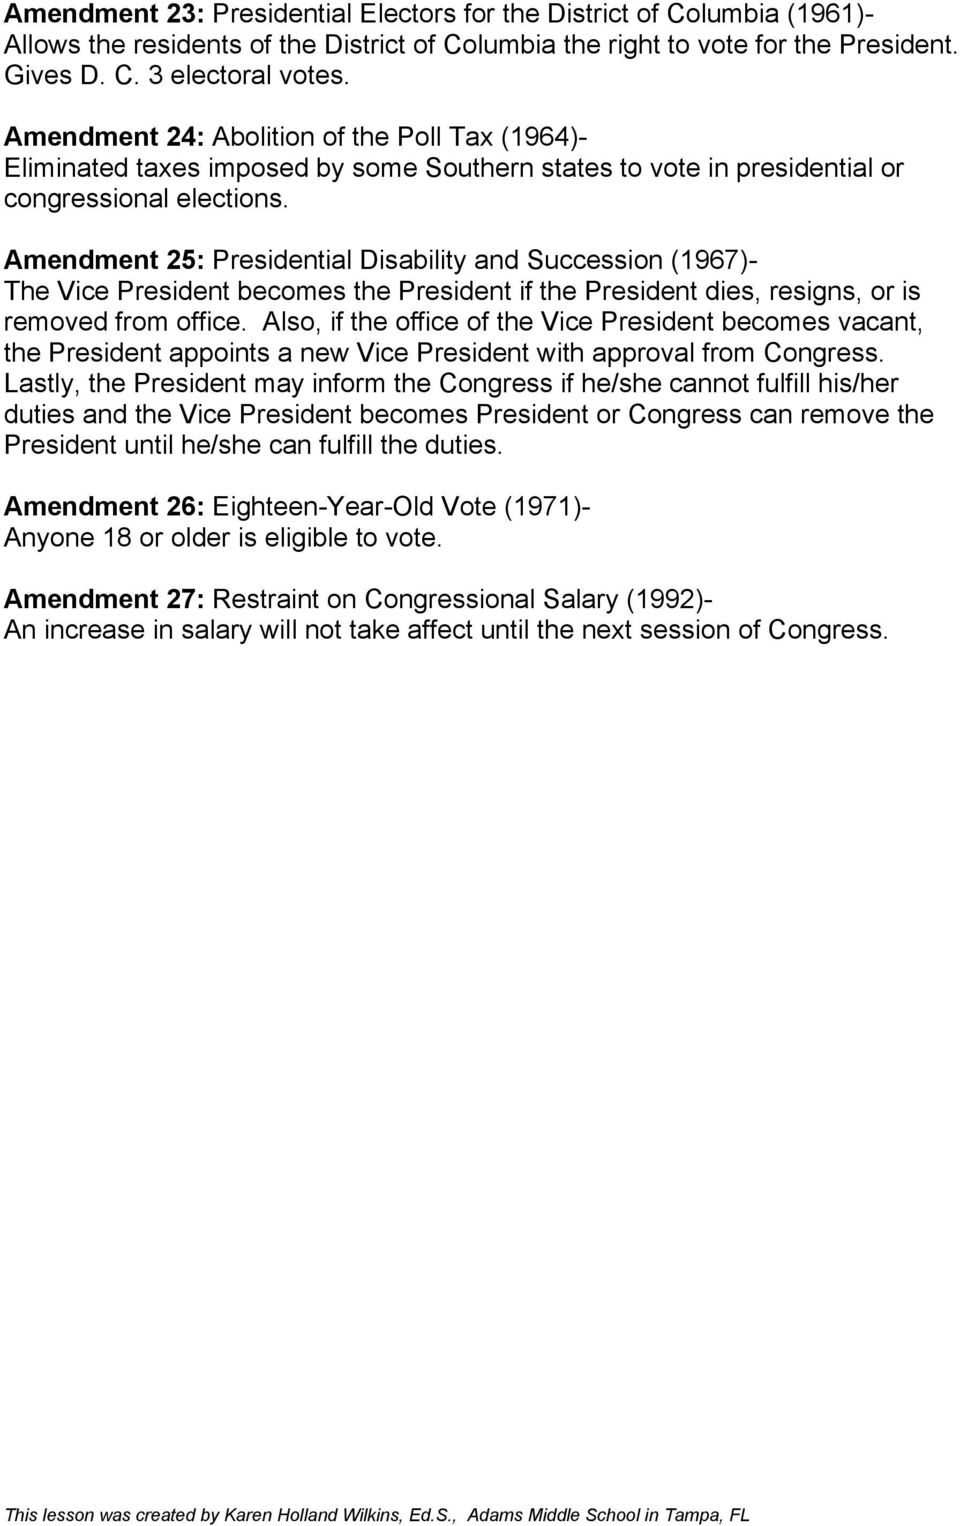 Amendment 25: Presidential Disability and Succession (1967)- The Vice President becomes the President if the President dies, resigns, or is removed from office.